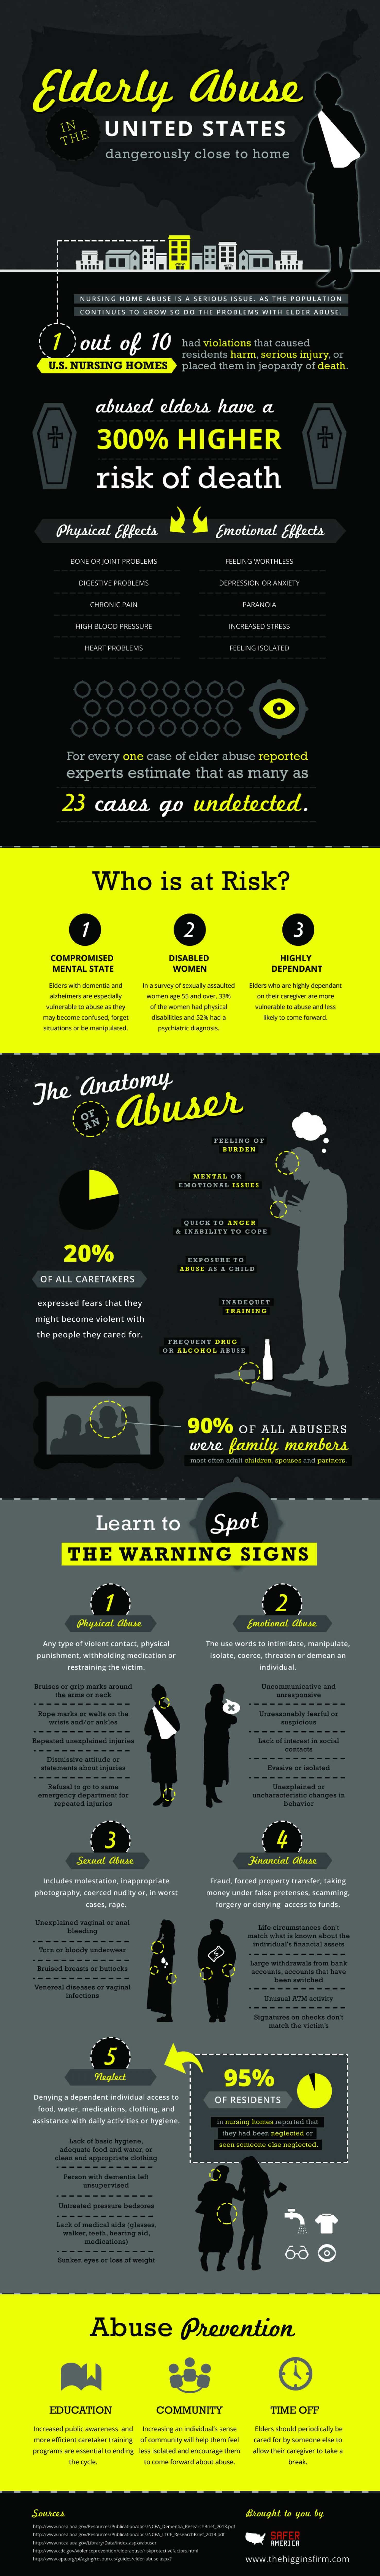 Elderly Abuse in the United States: Dangerously Close to Home Infographic